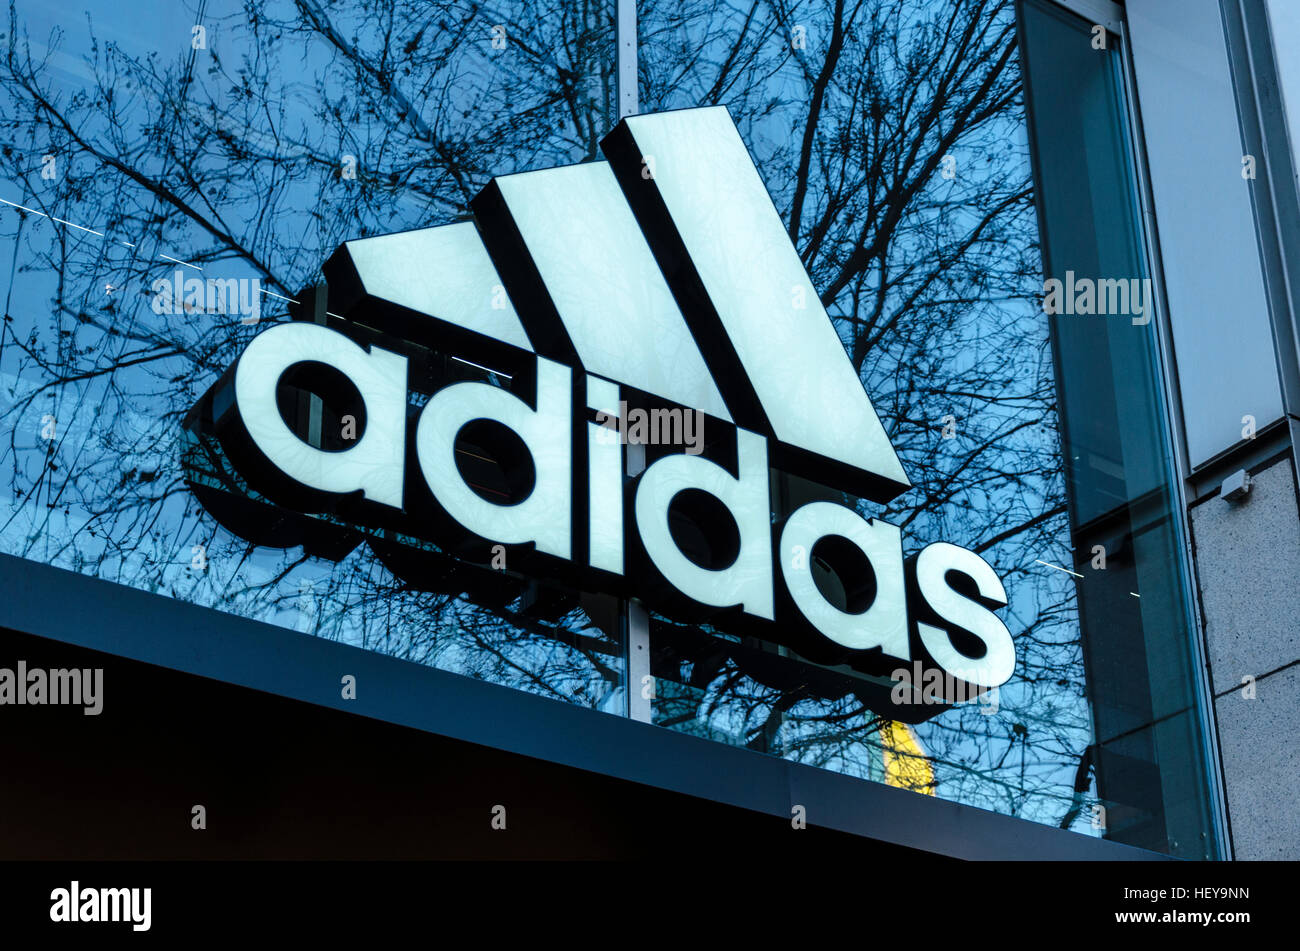 Adidas logo outside store, Berlin, Germany - Stock Image